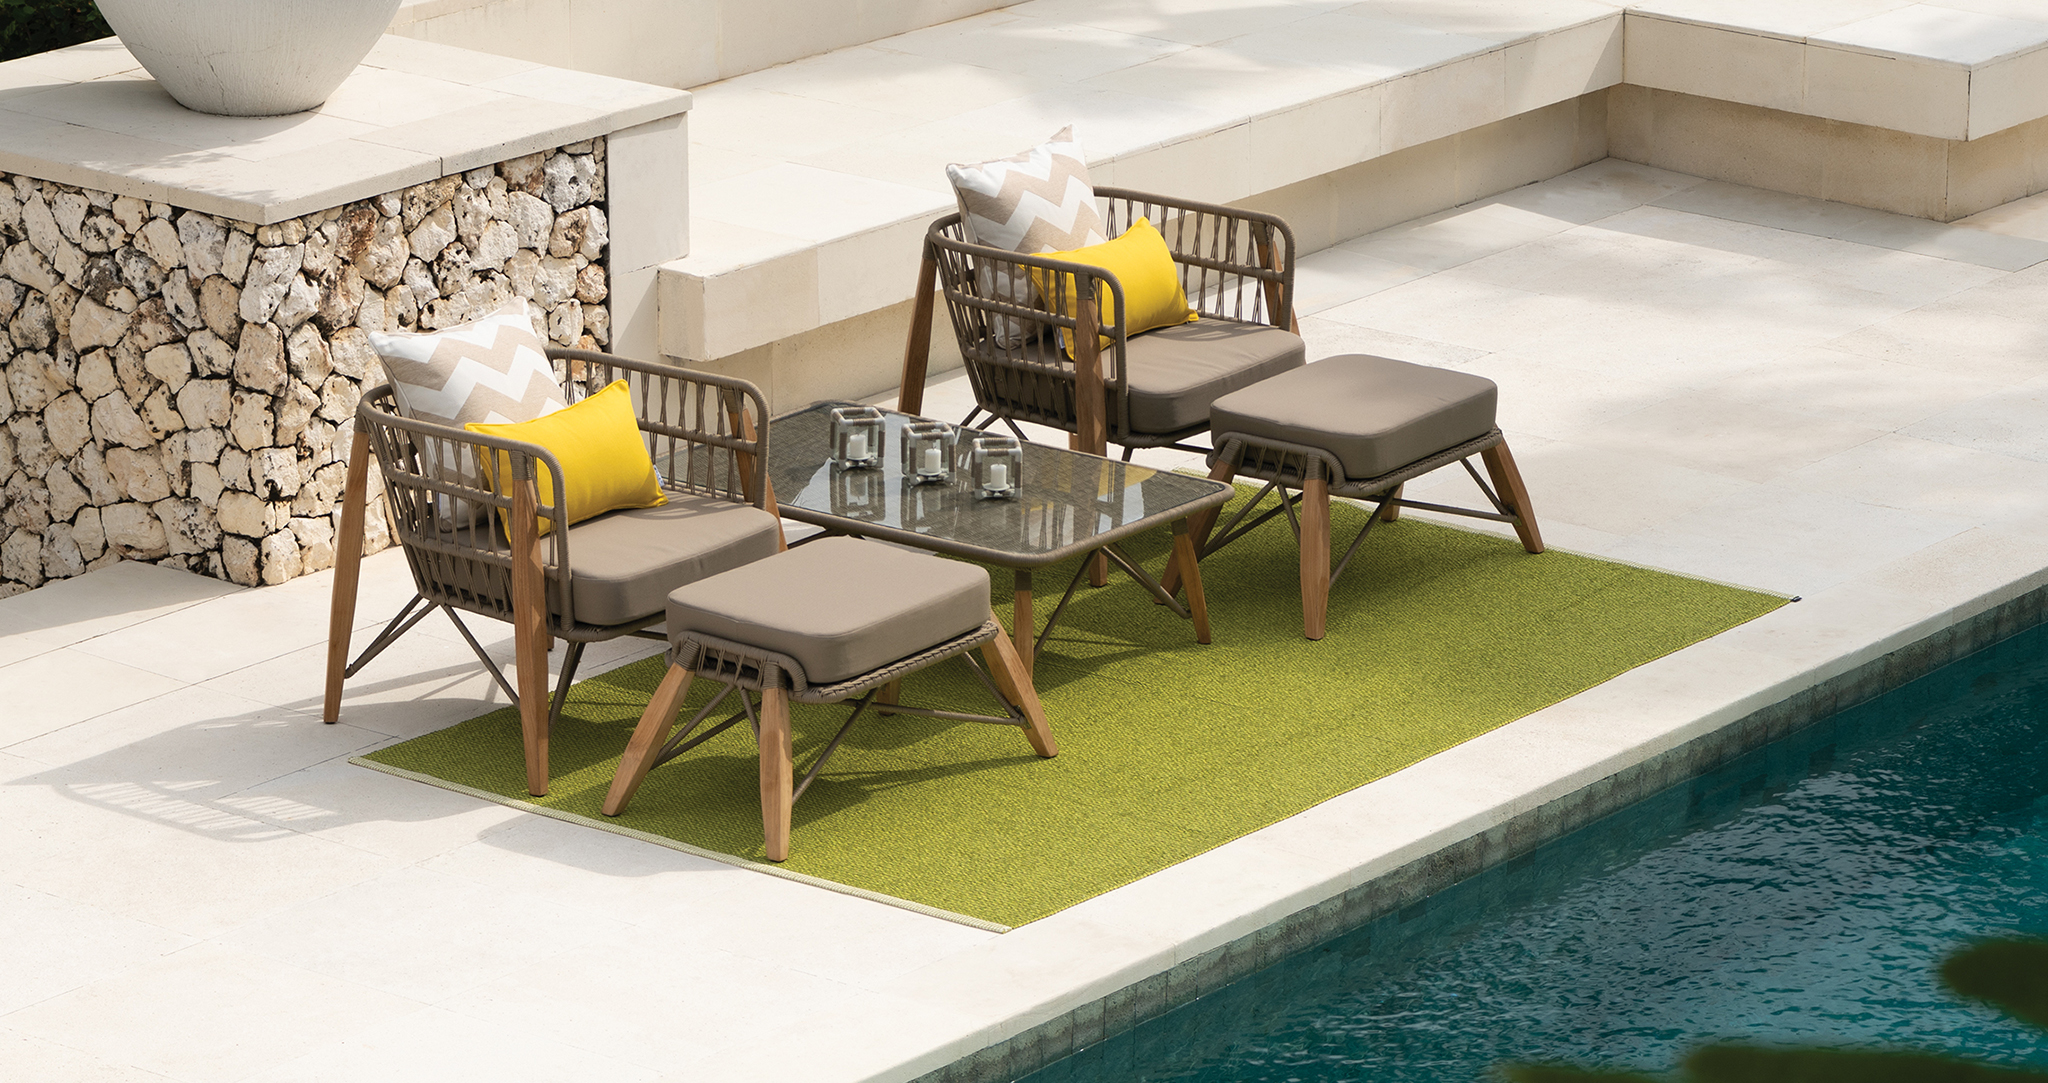 Luxury outdoor Pimlico sofas and footstools by the pool